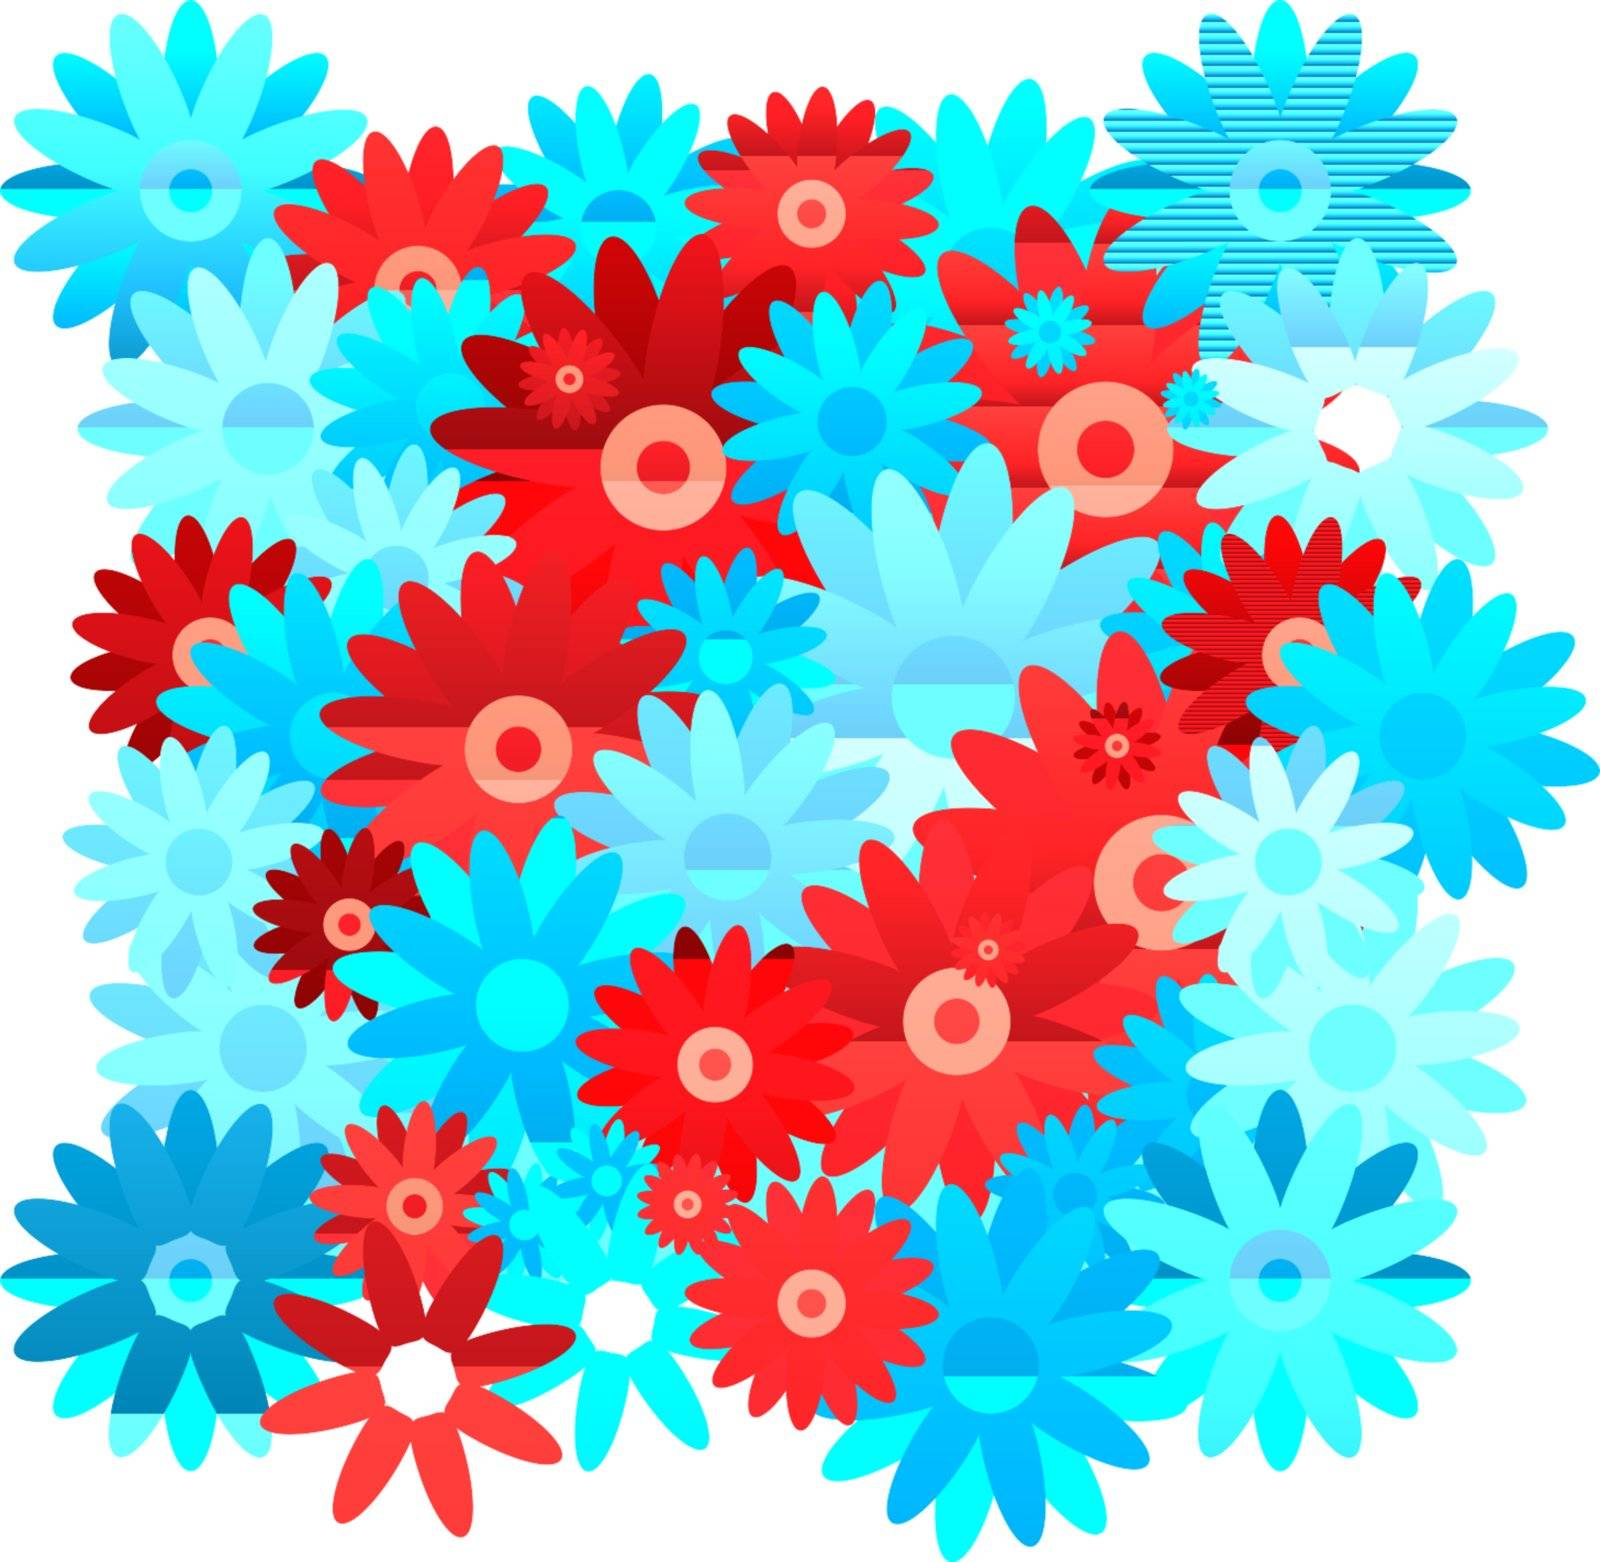 floral inspired red and blue seamless background with no join